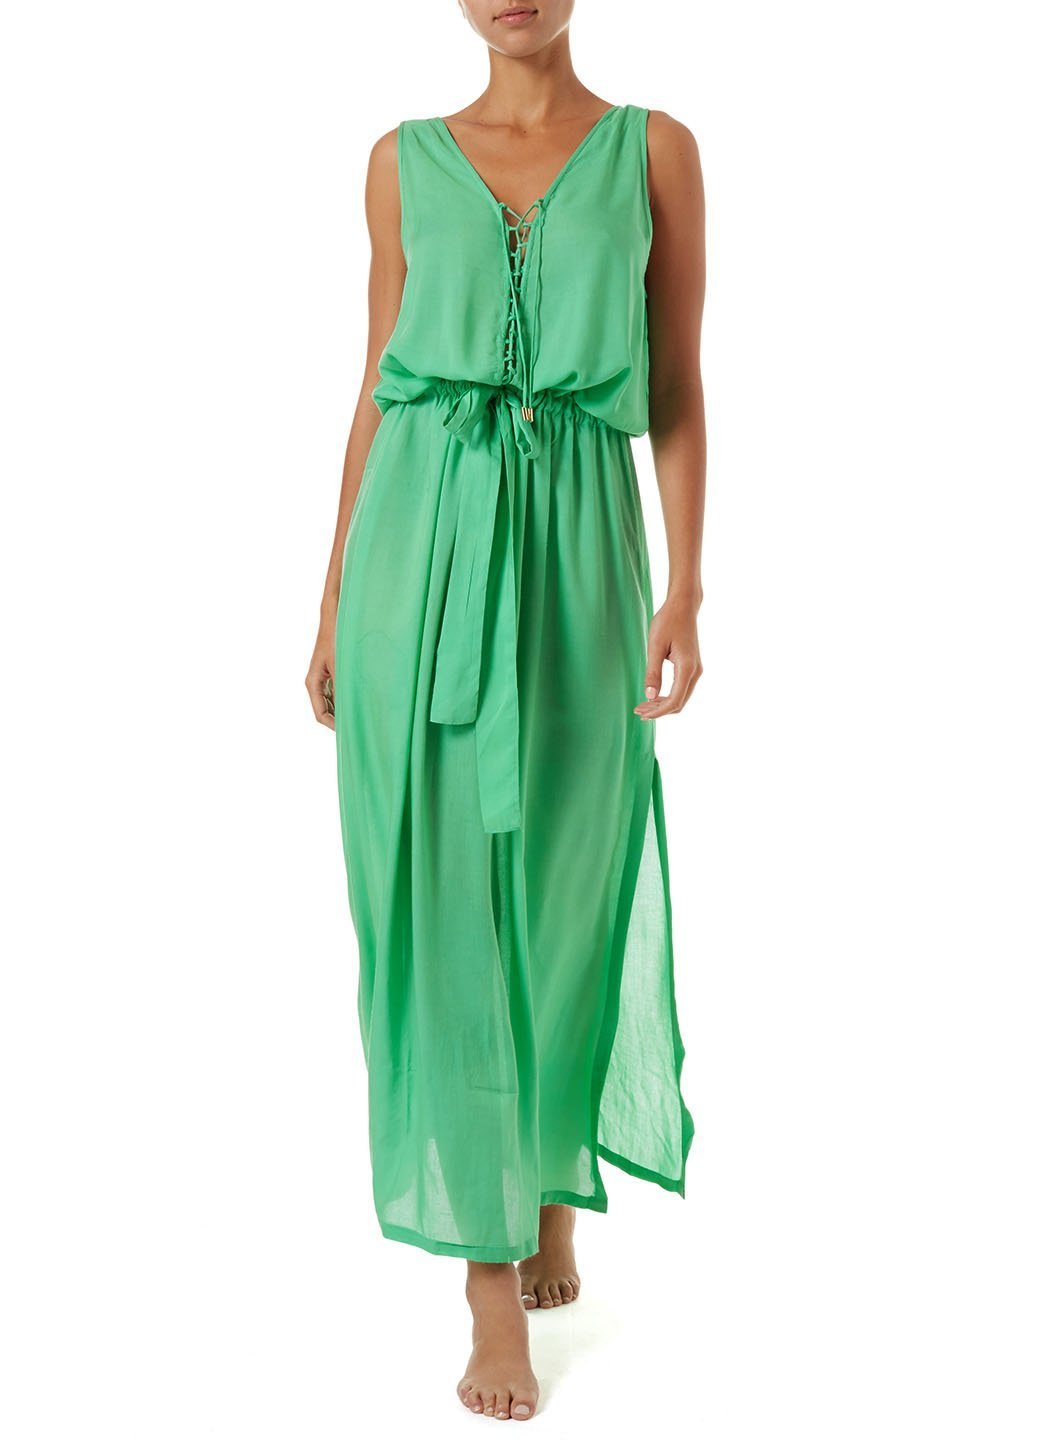 jacquie green laceup belted maxi dress 2019 F